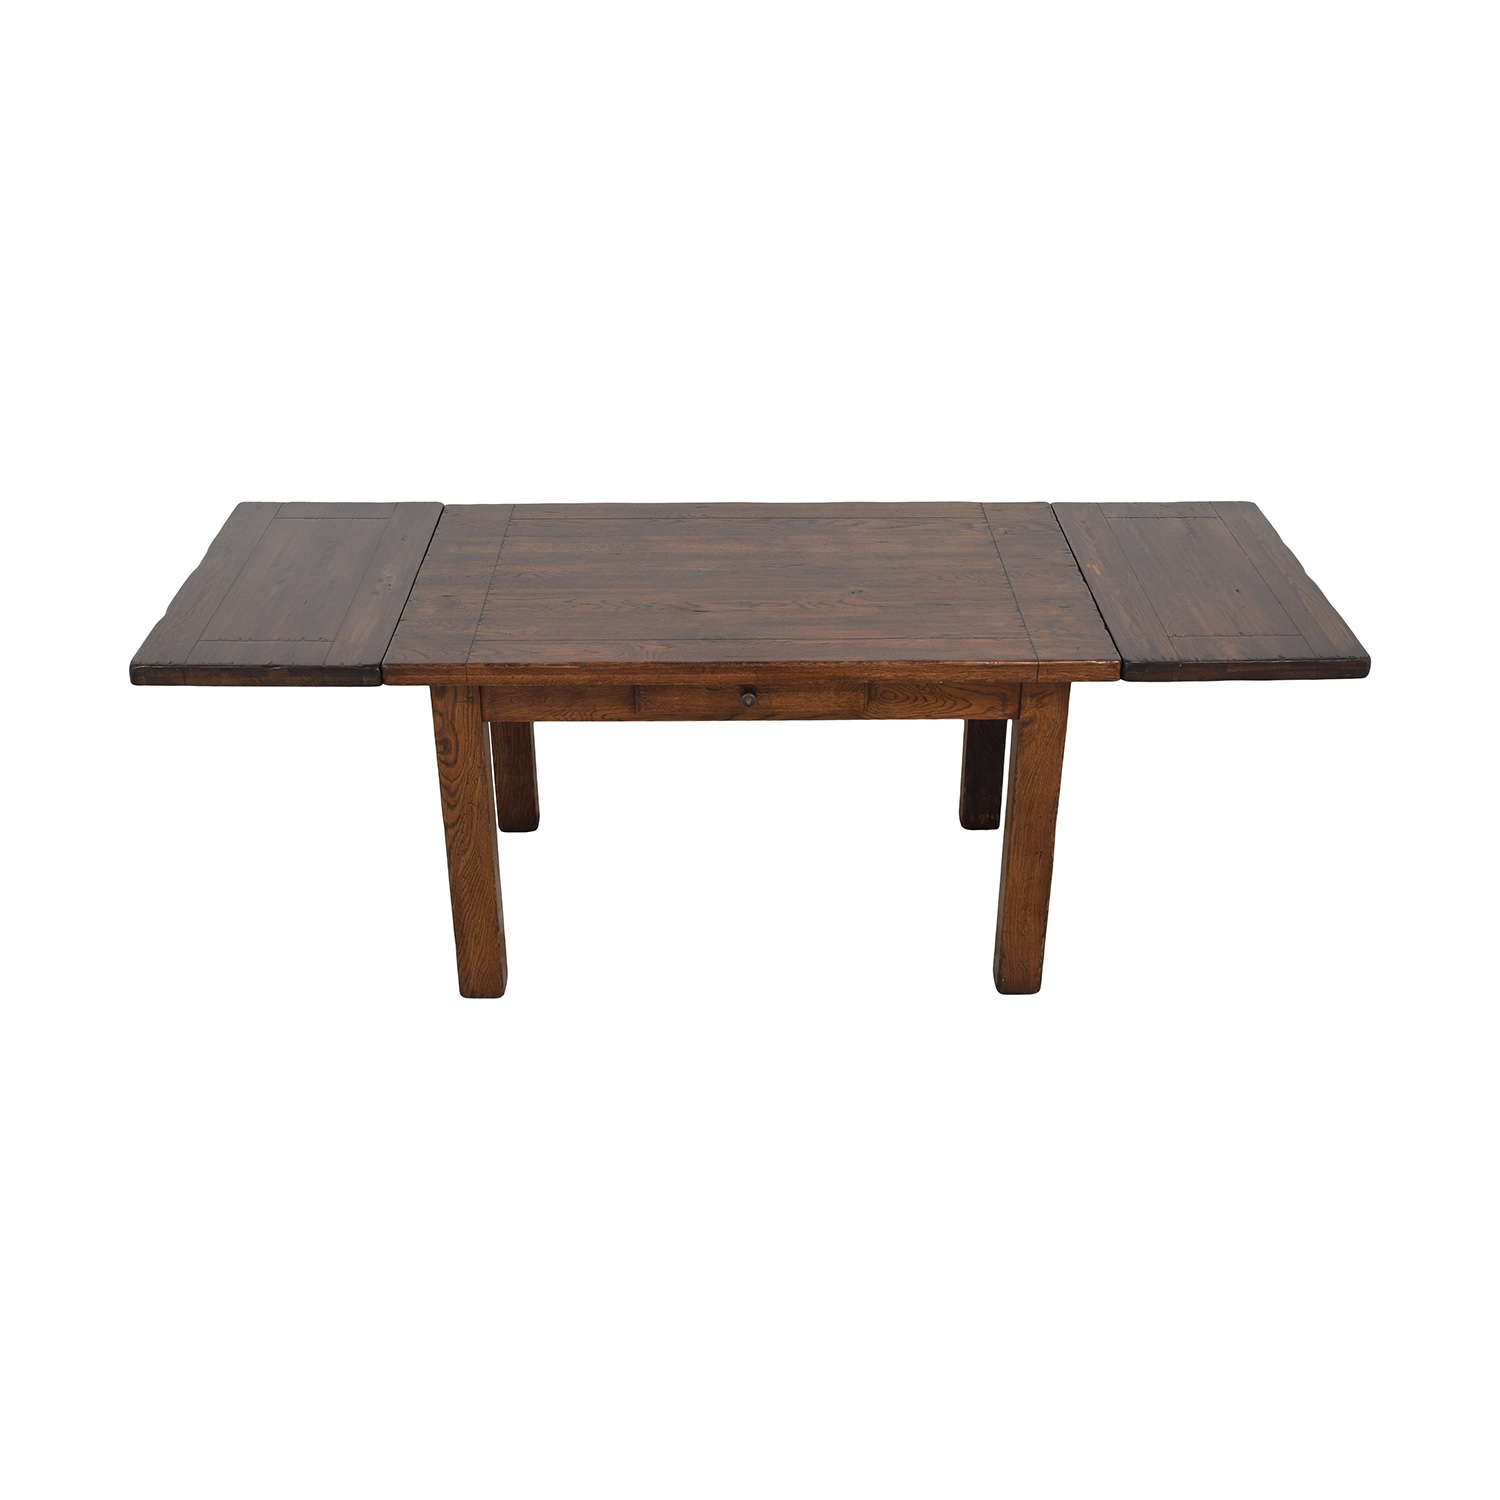 ABC Carpet & Home ABC Carpet & Home Dining Table nj